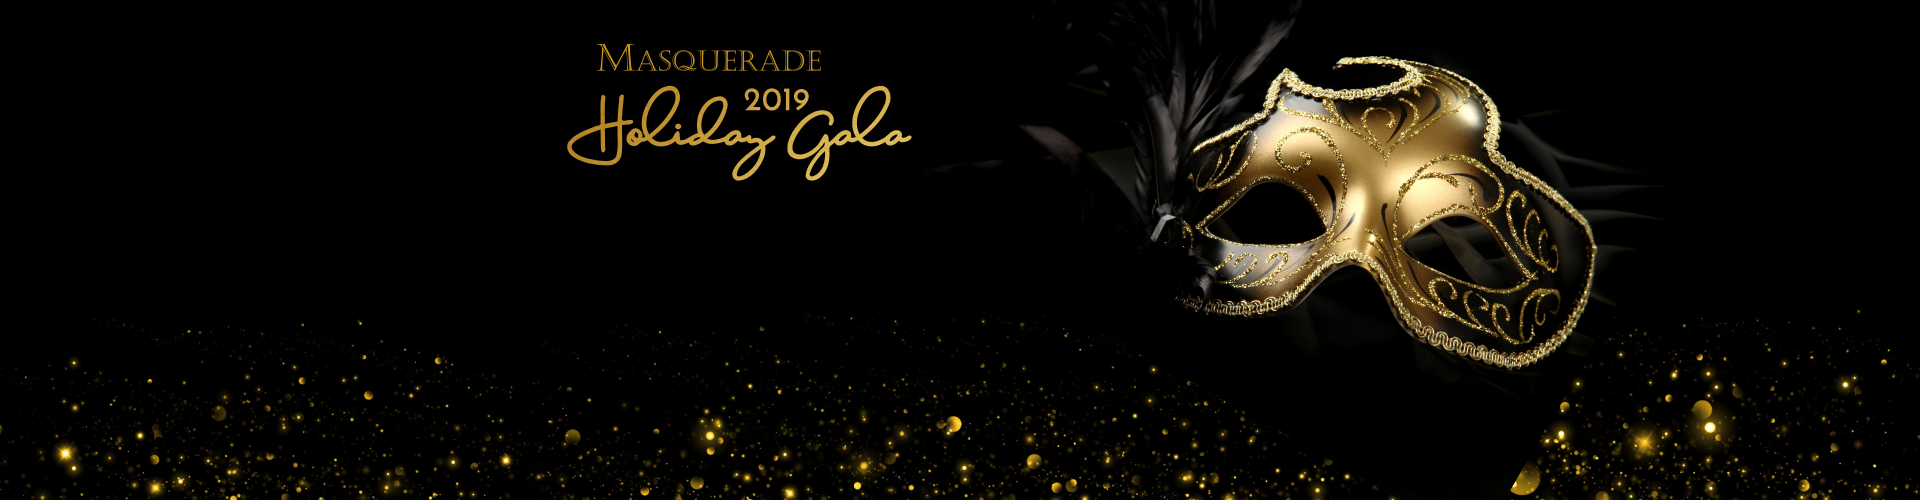 2019-Holiday-Gala-website-event-title